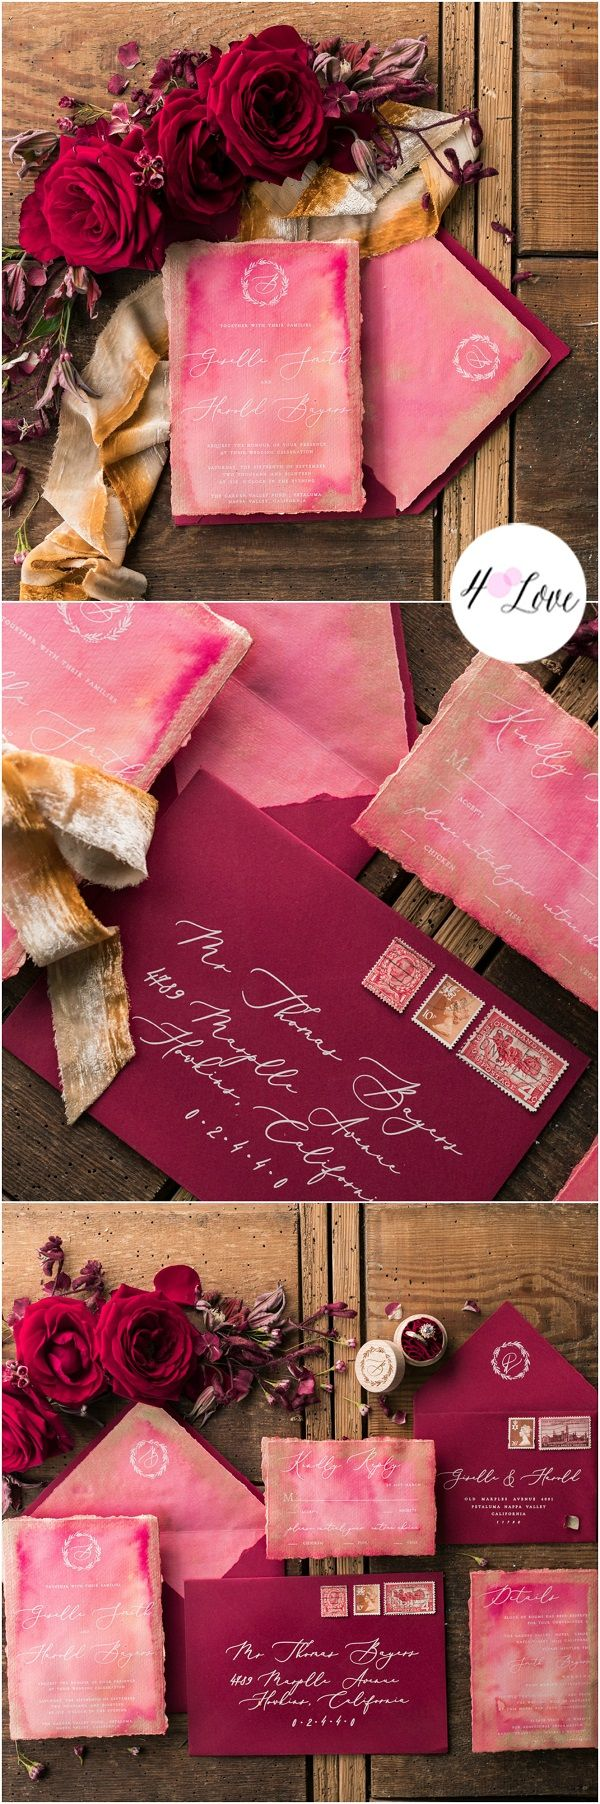 106 best Wedding-Invites images on Pinterest | Invitations, Weddings ...